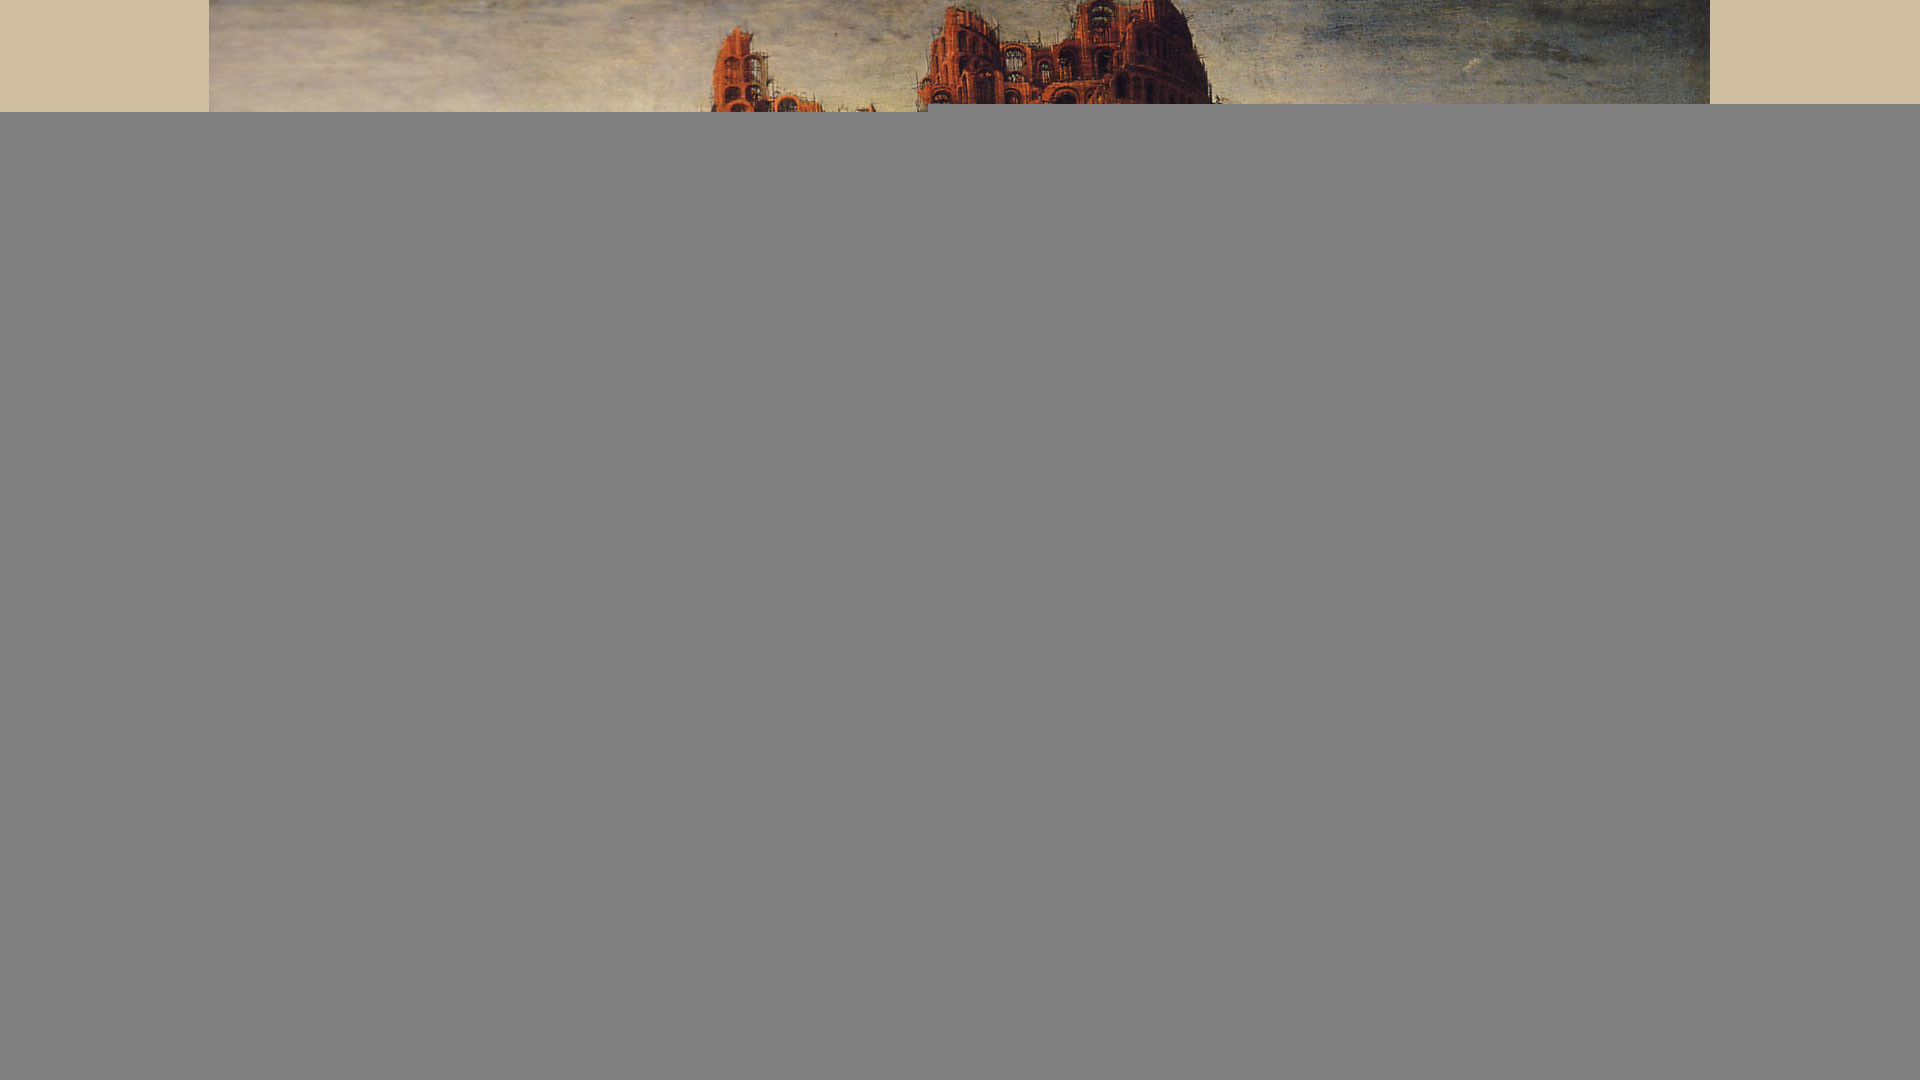 Wallpapers Magritte Rene Tower Of Babel Art Paintings Fine With |  #493418 #magritte